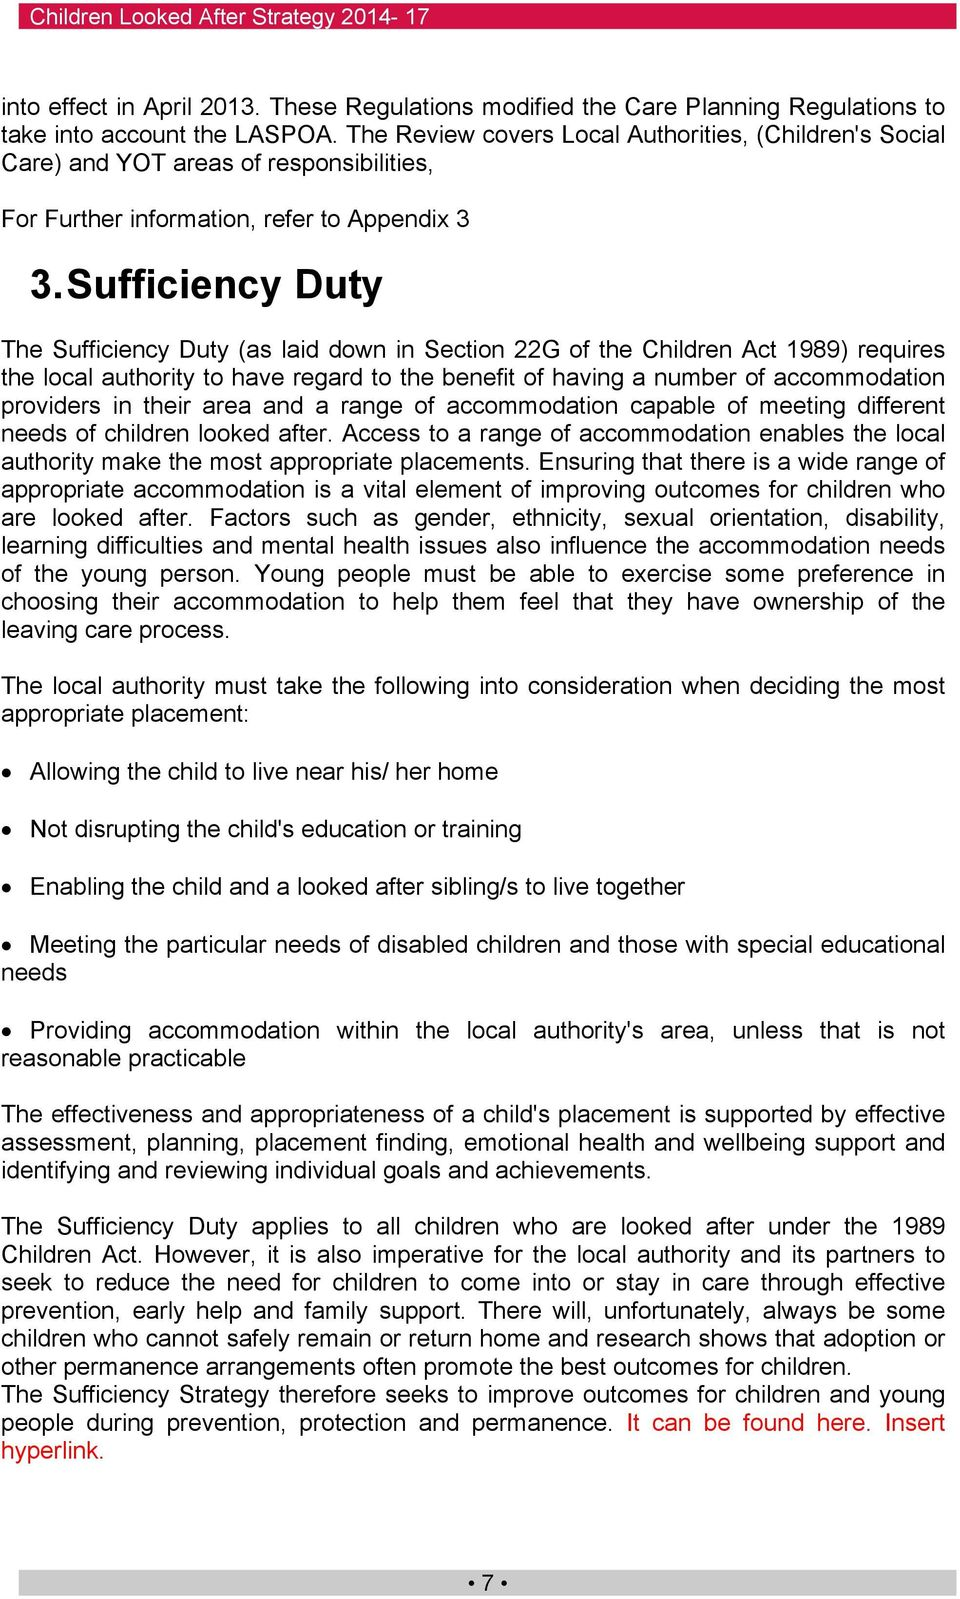 Sufficiency Duty The Sufficiency Duty (as laid down in Section 22G of the Children Act 1989) requires the local authority to have regard to the benefit of having a number of accommodation providers